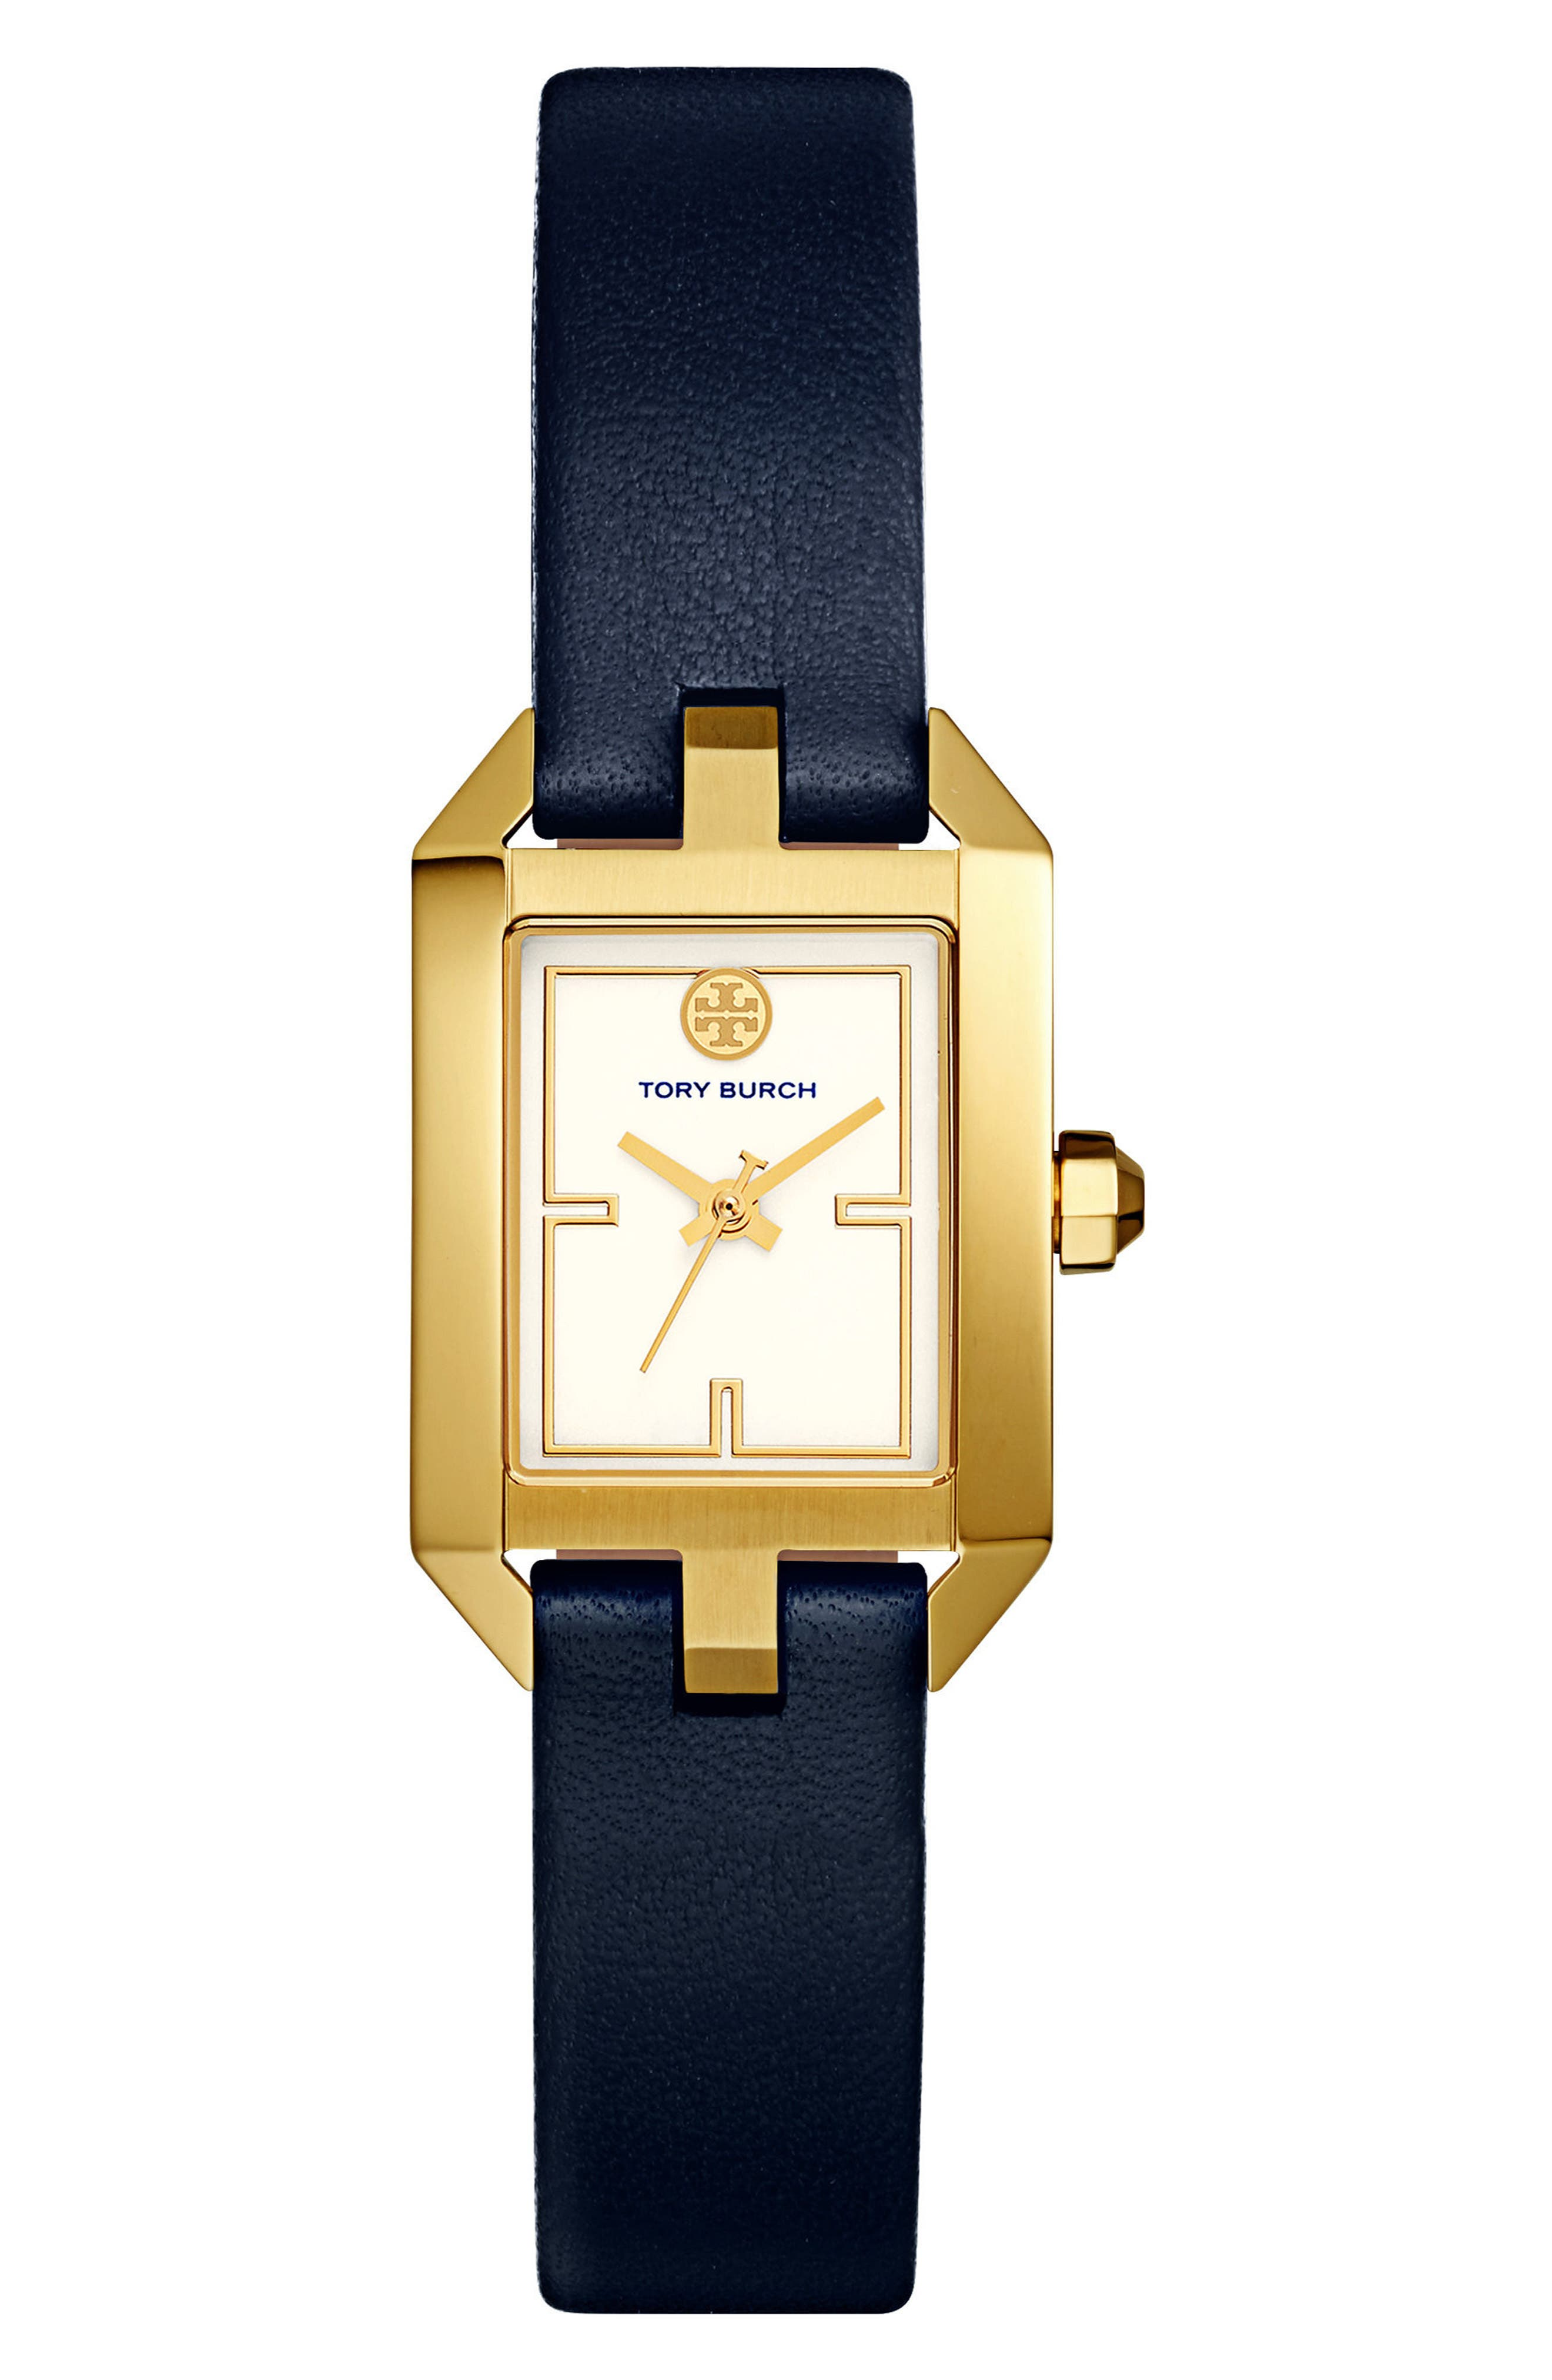 Main Image - Tory Burch Dalloway Leather Strap Watch, 23mm x 36.5mm